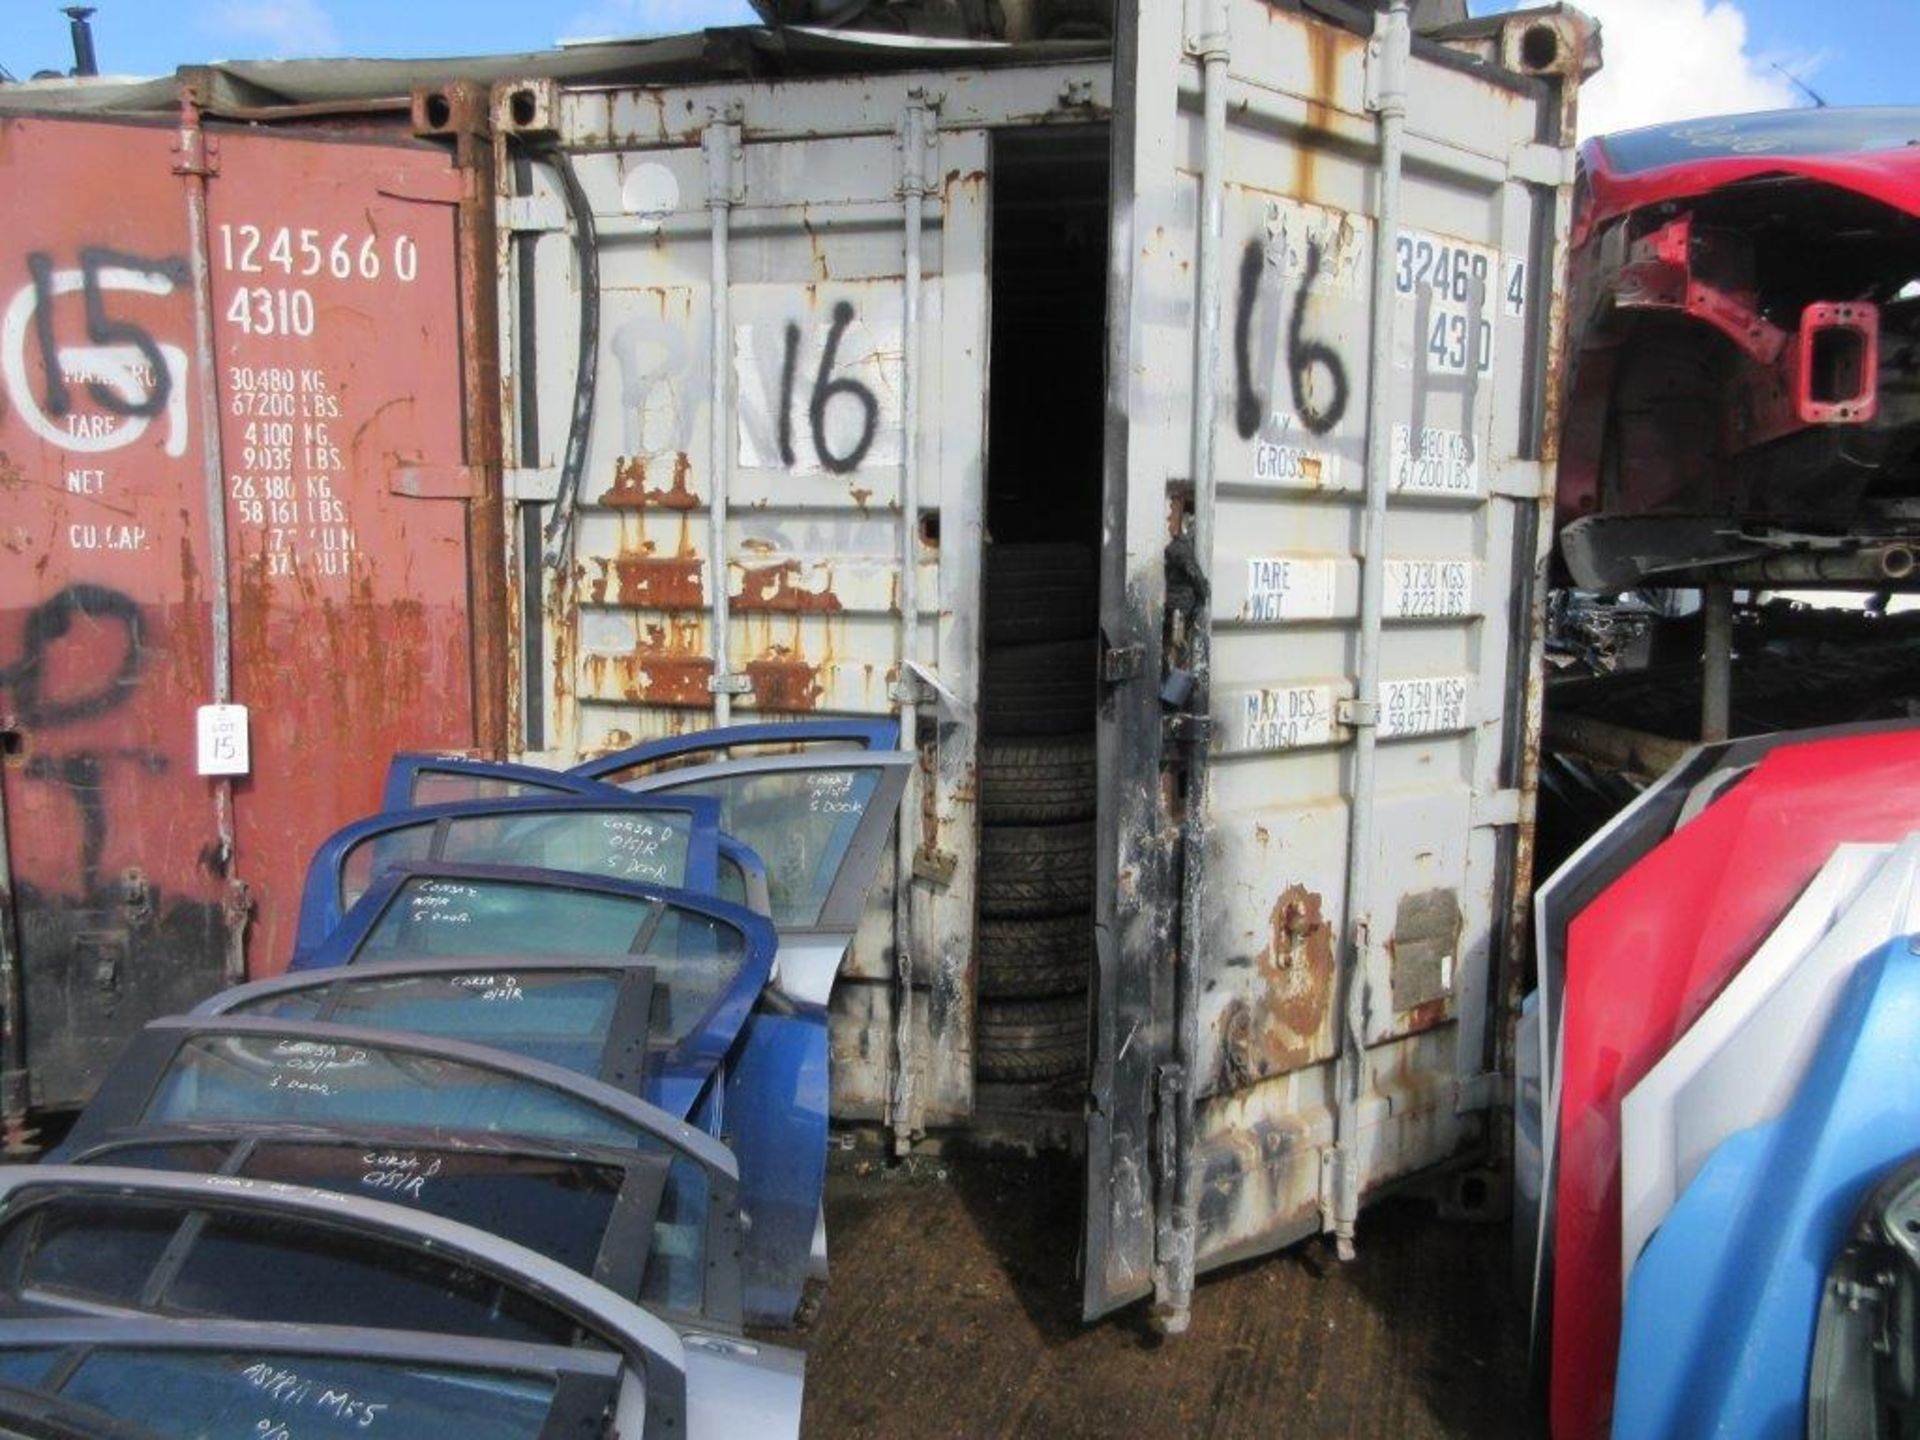 Lot 16 - Grey/white steel shipping container, 40 ft. x 8 ft. approx. plus racks and contents including tyres,